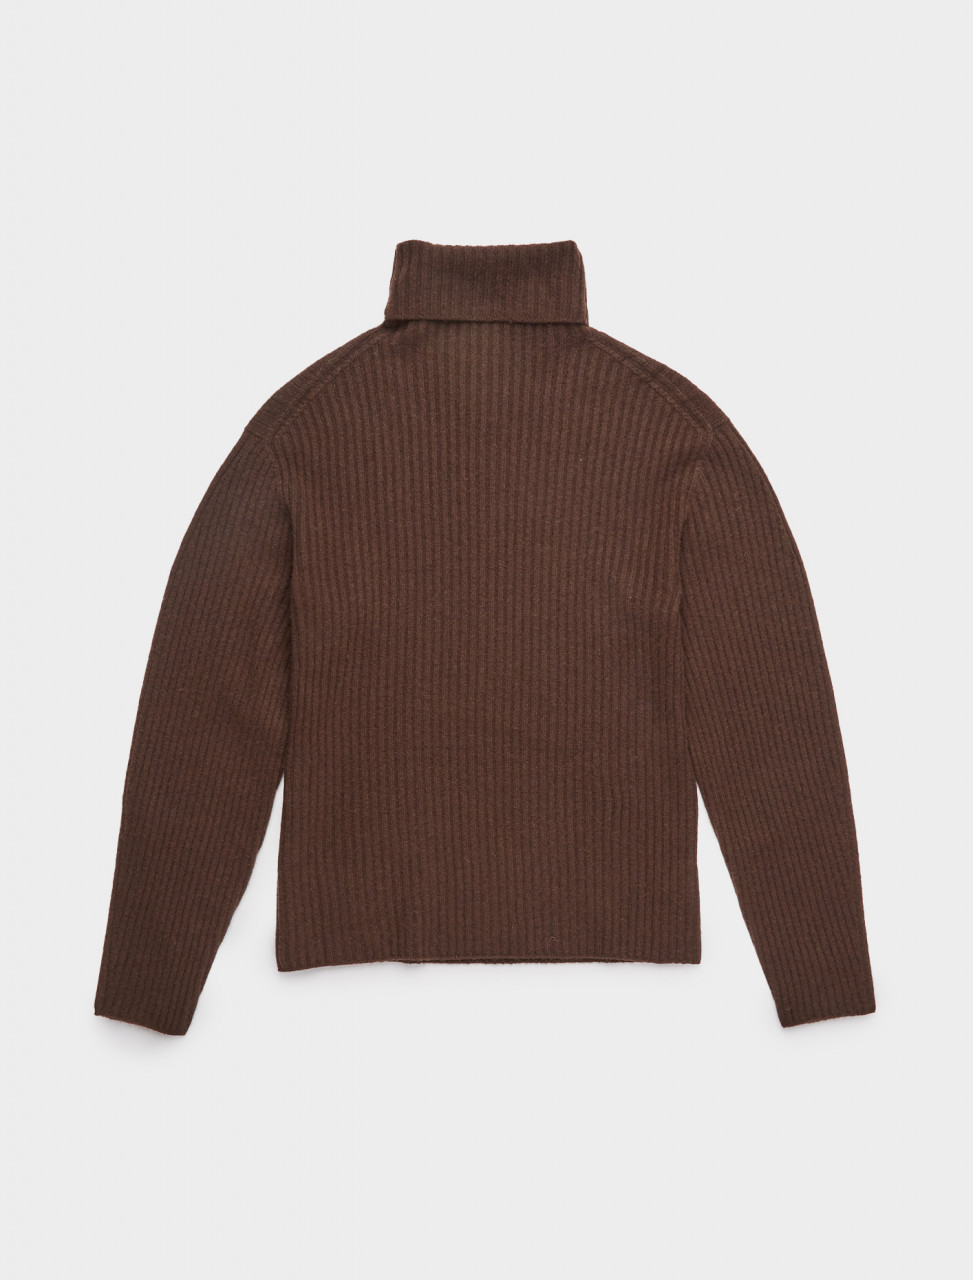 353-AM20FW01KN AMOMENTO WHOLE GARMENT RIB TURTLE NECK BROWN